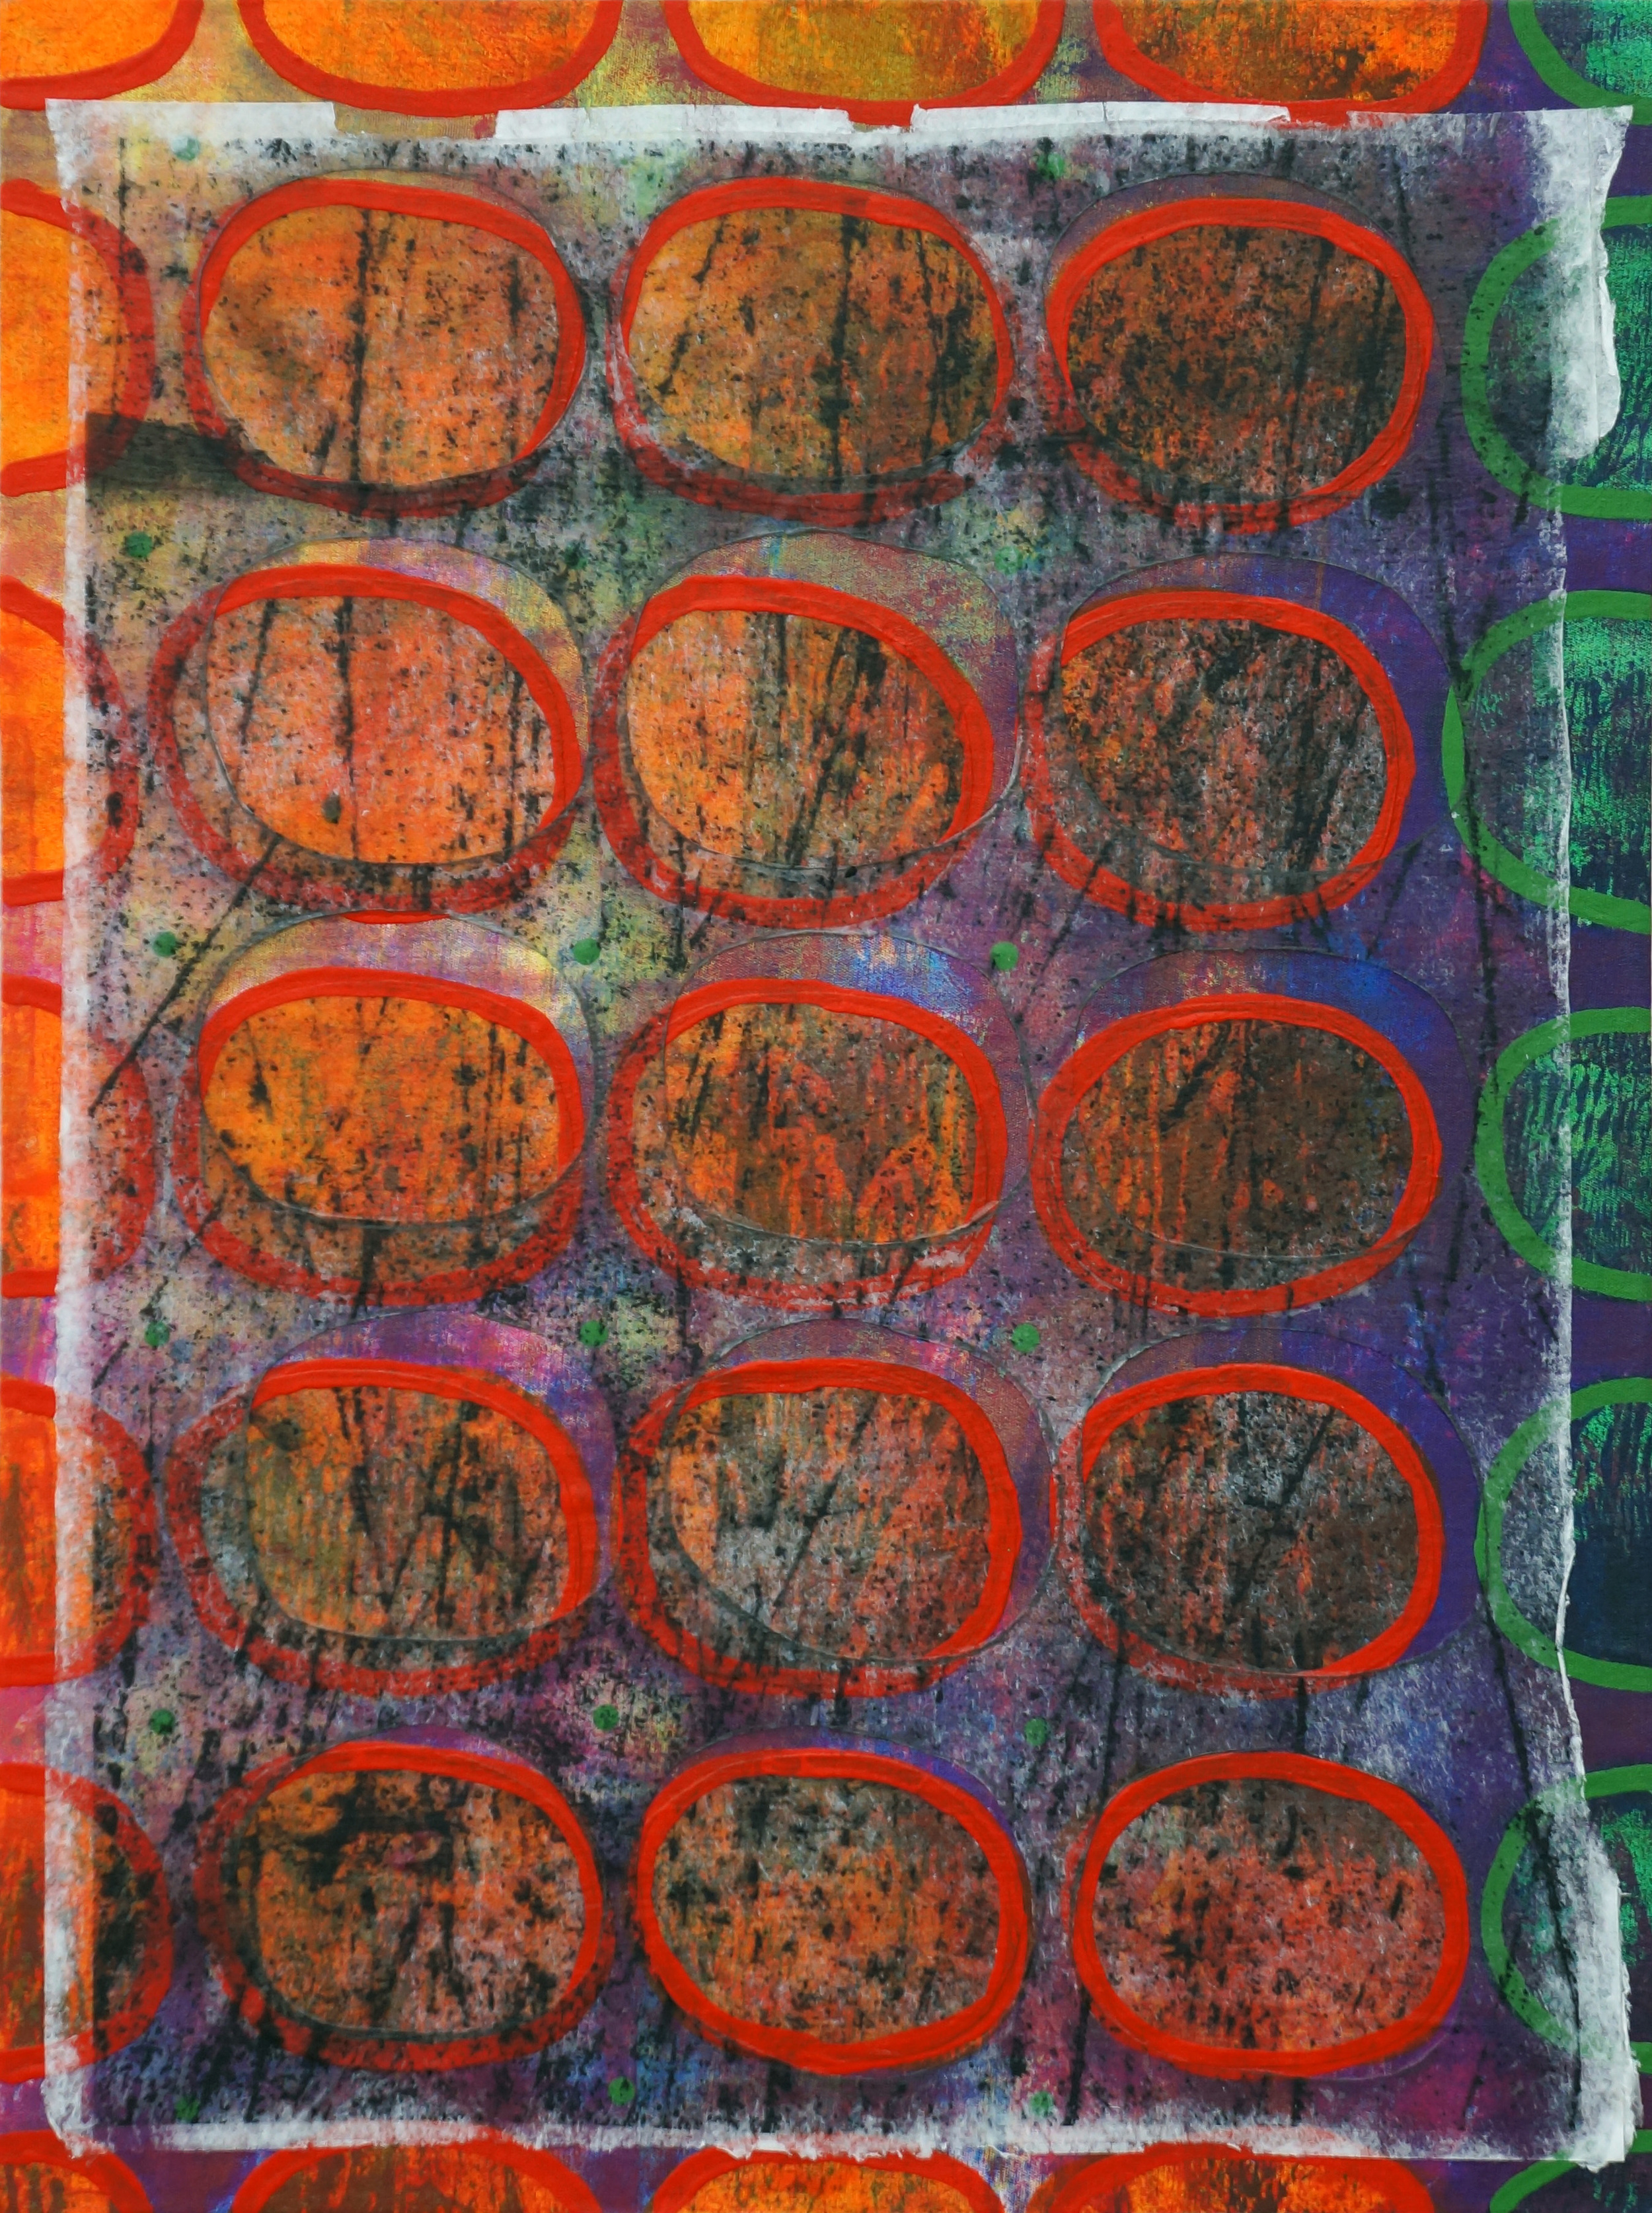 Jeanne Williamson, Bubbles and Cracks on Ice on Fences #5 , mixed media on cradled board, 14x14